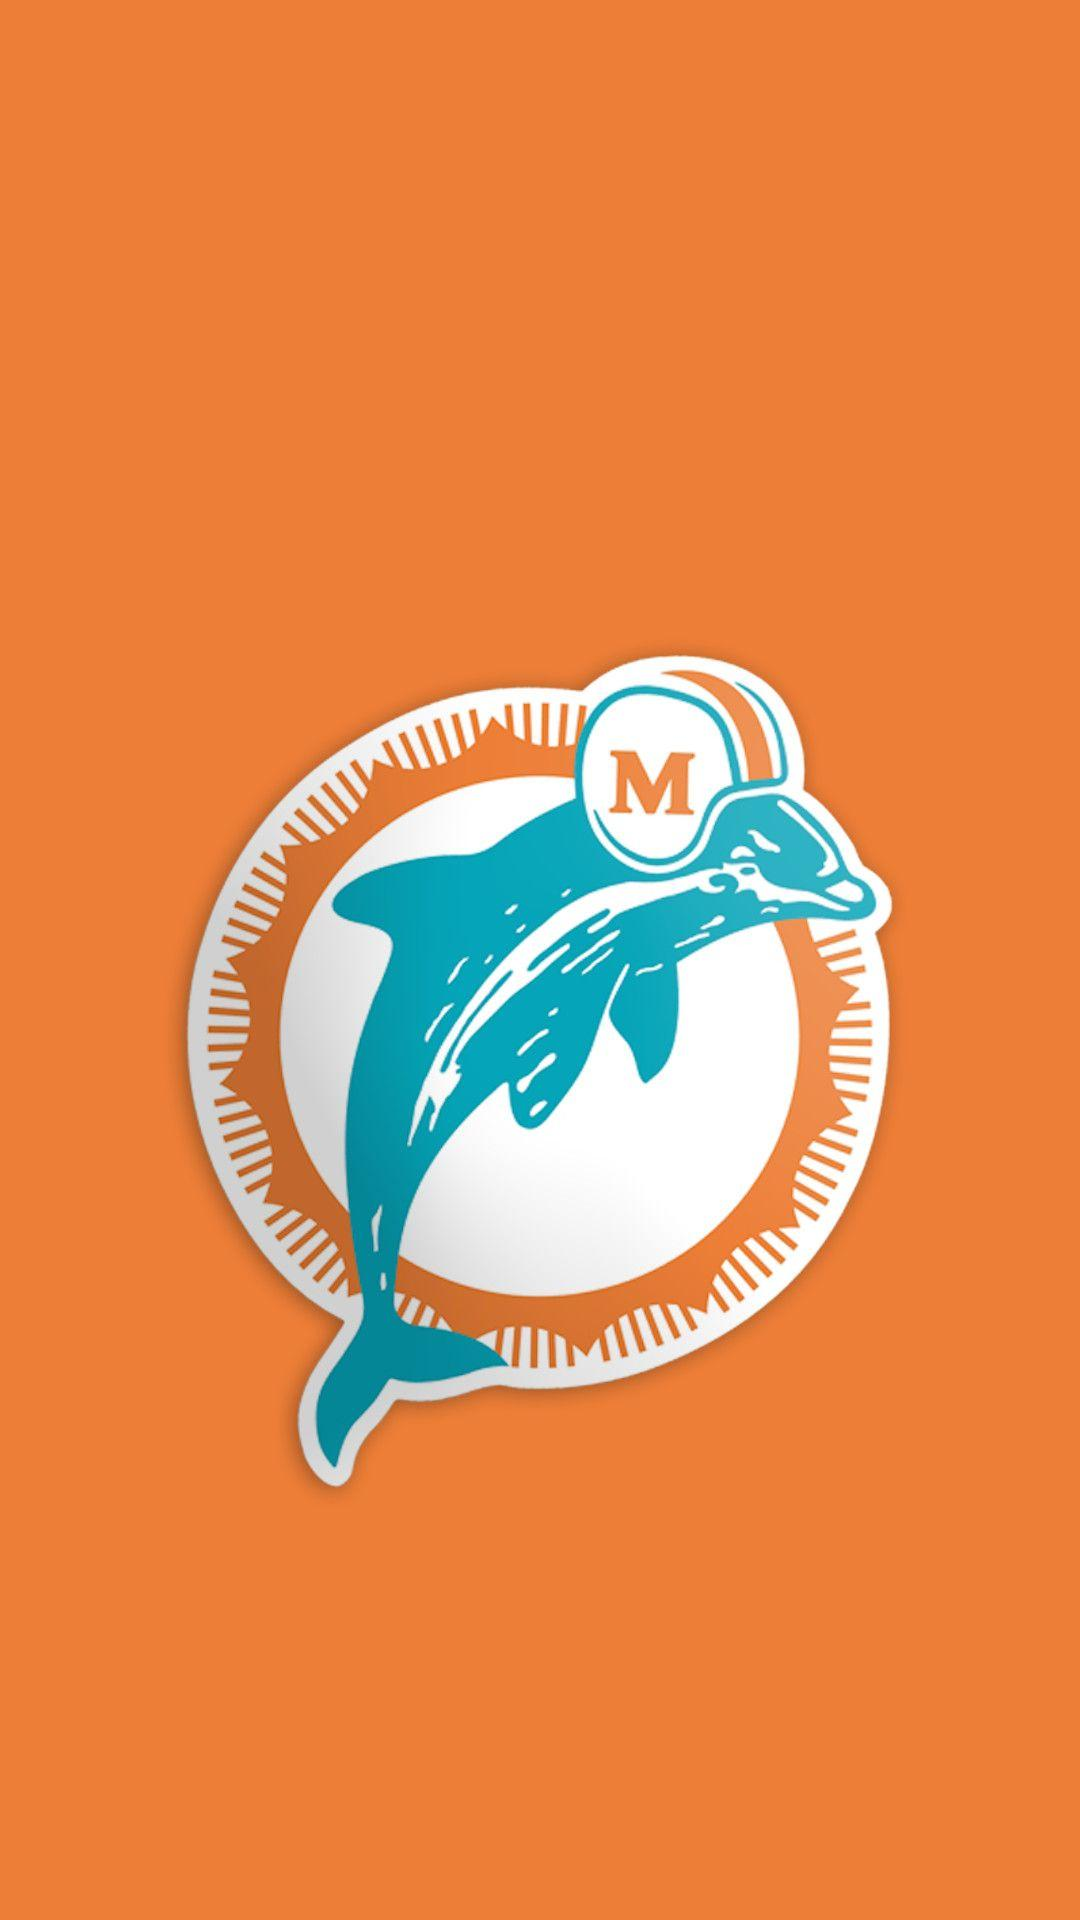 Miami Dolphins Wallpaper iPhone (69+ images)